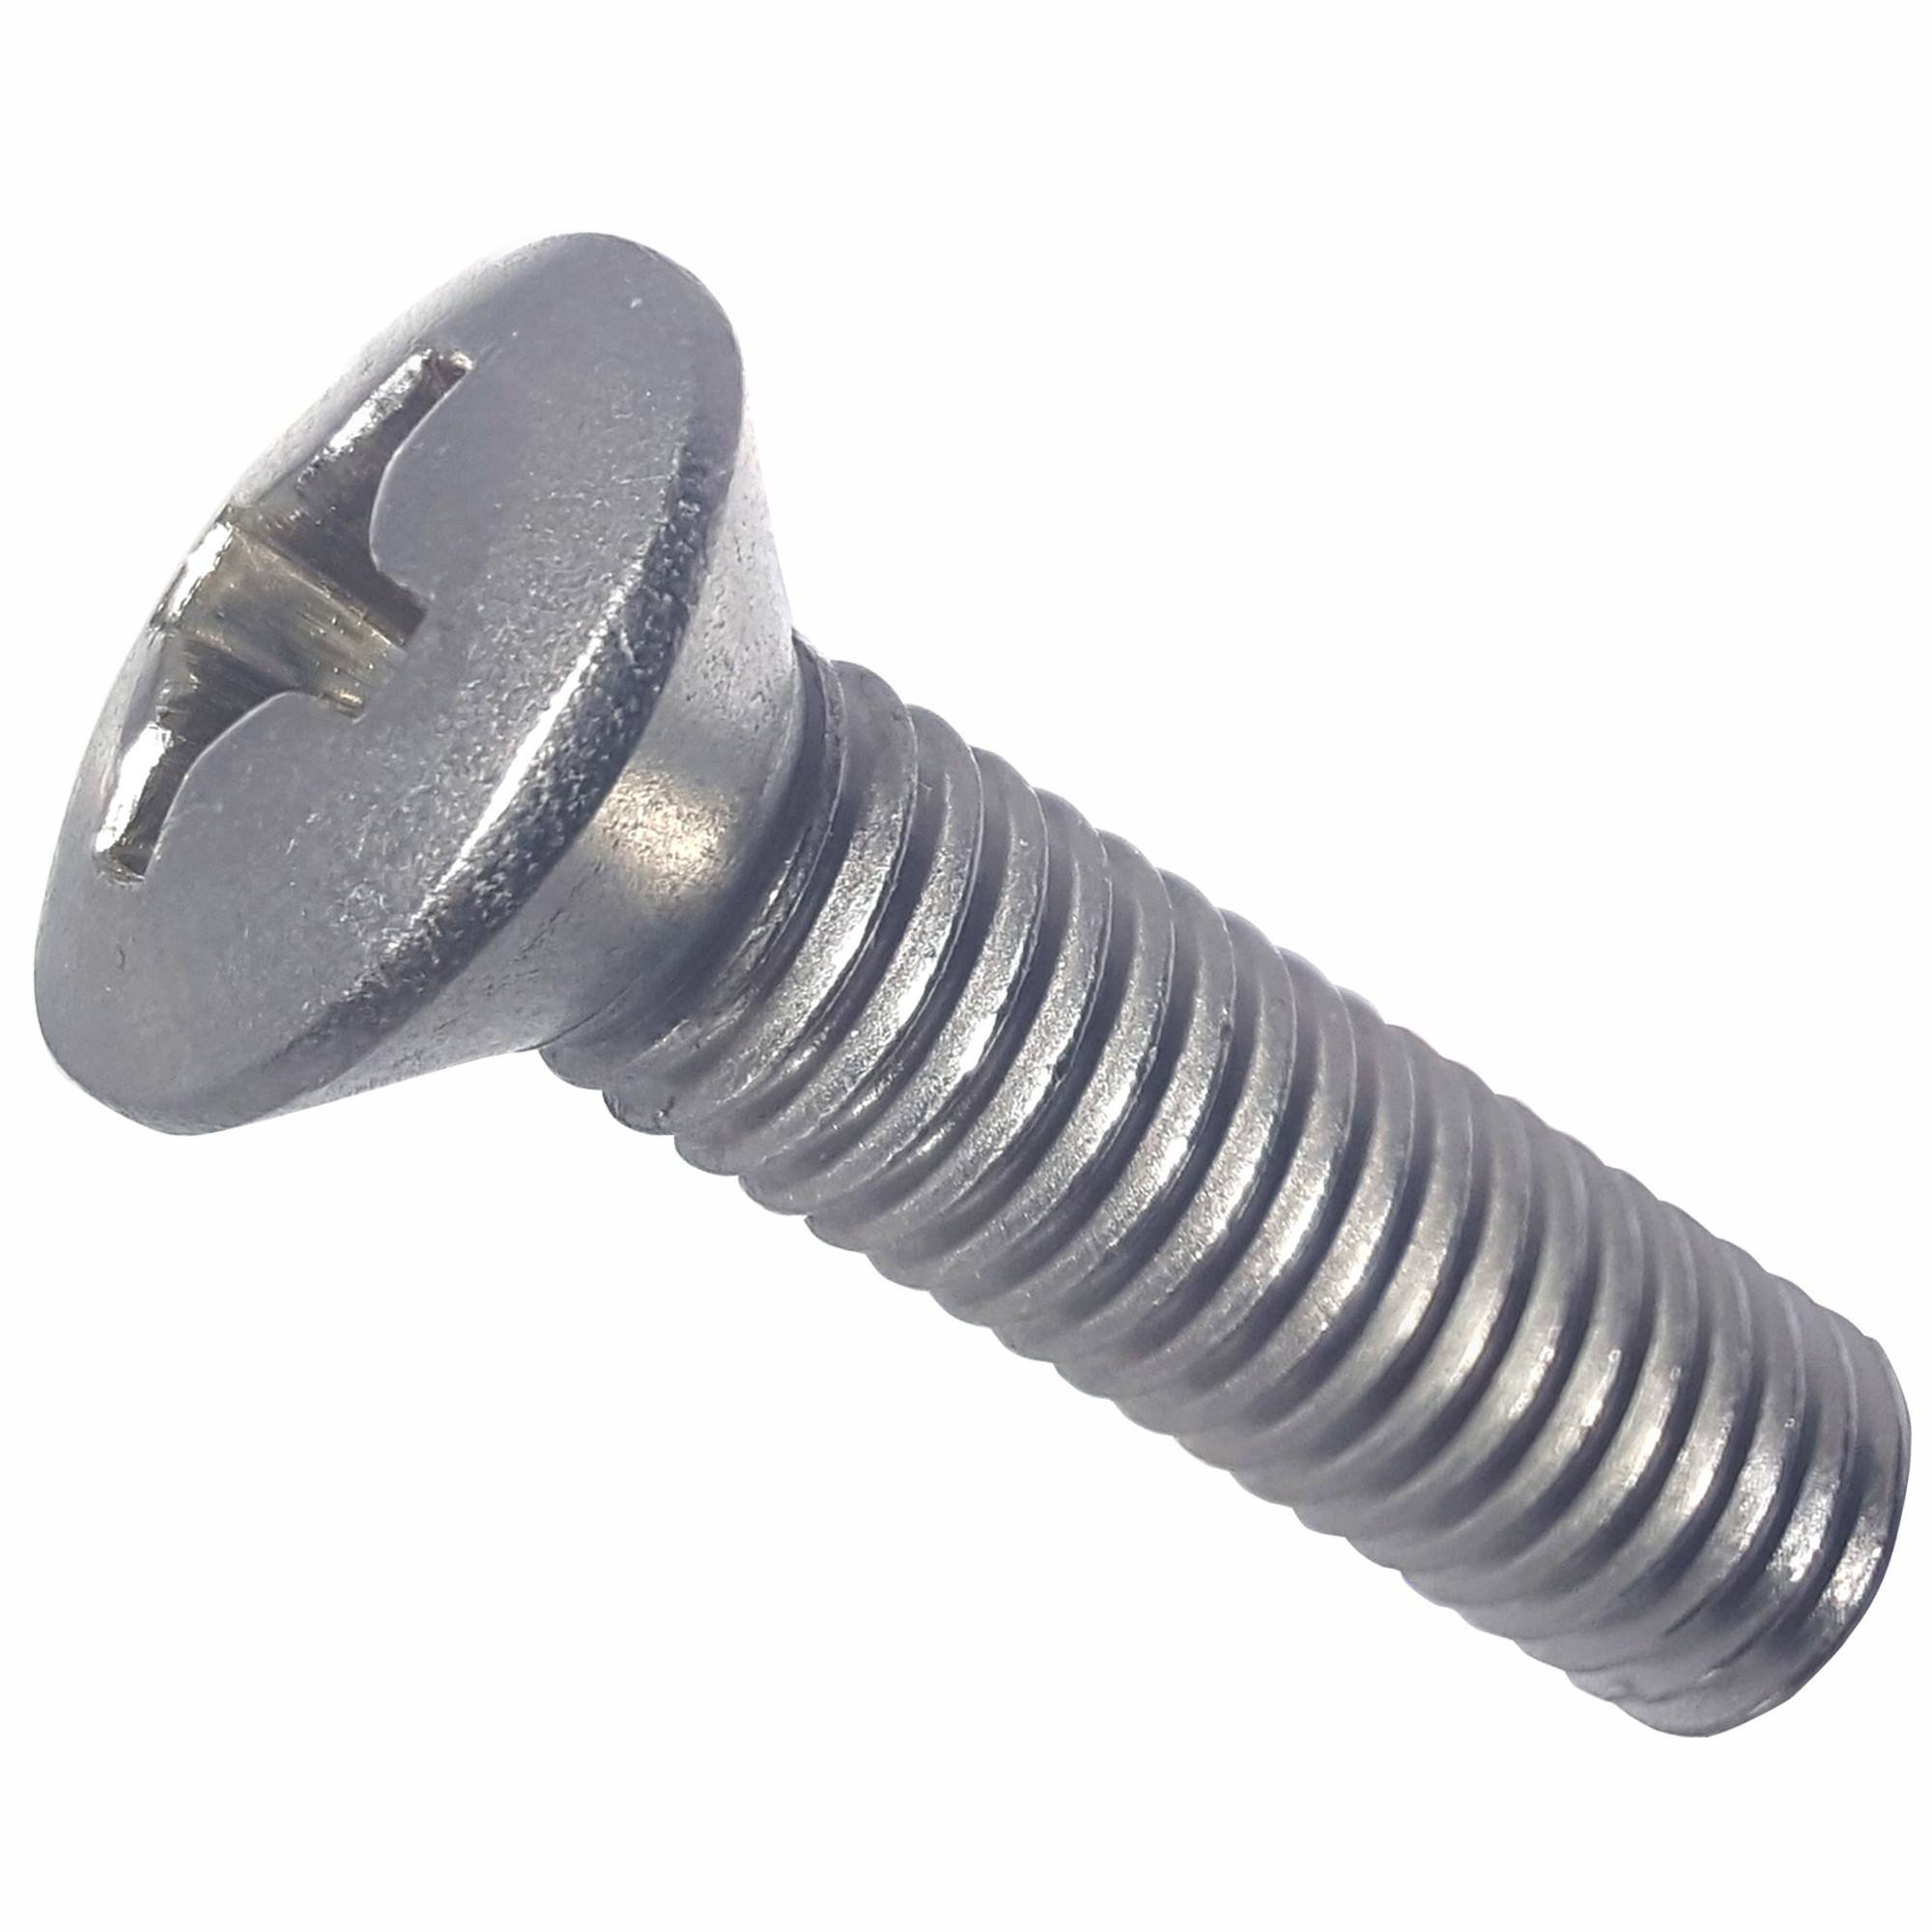 12-24 x 1-1/4'' Oval Head Machine Screws, Phillips Drive, Stainless Steel 18-8, Full Thread, Bright Finish, Machine Thread, Quantity 50